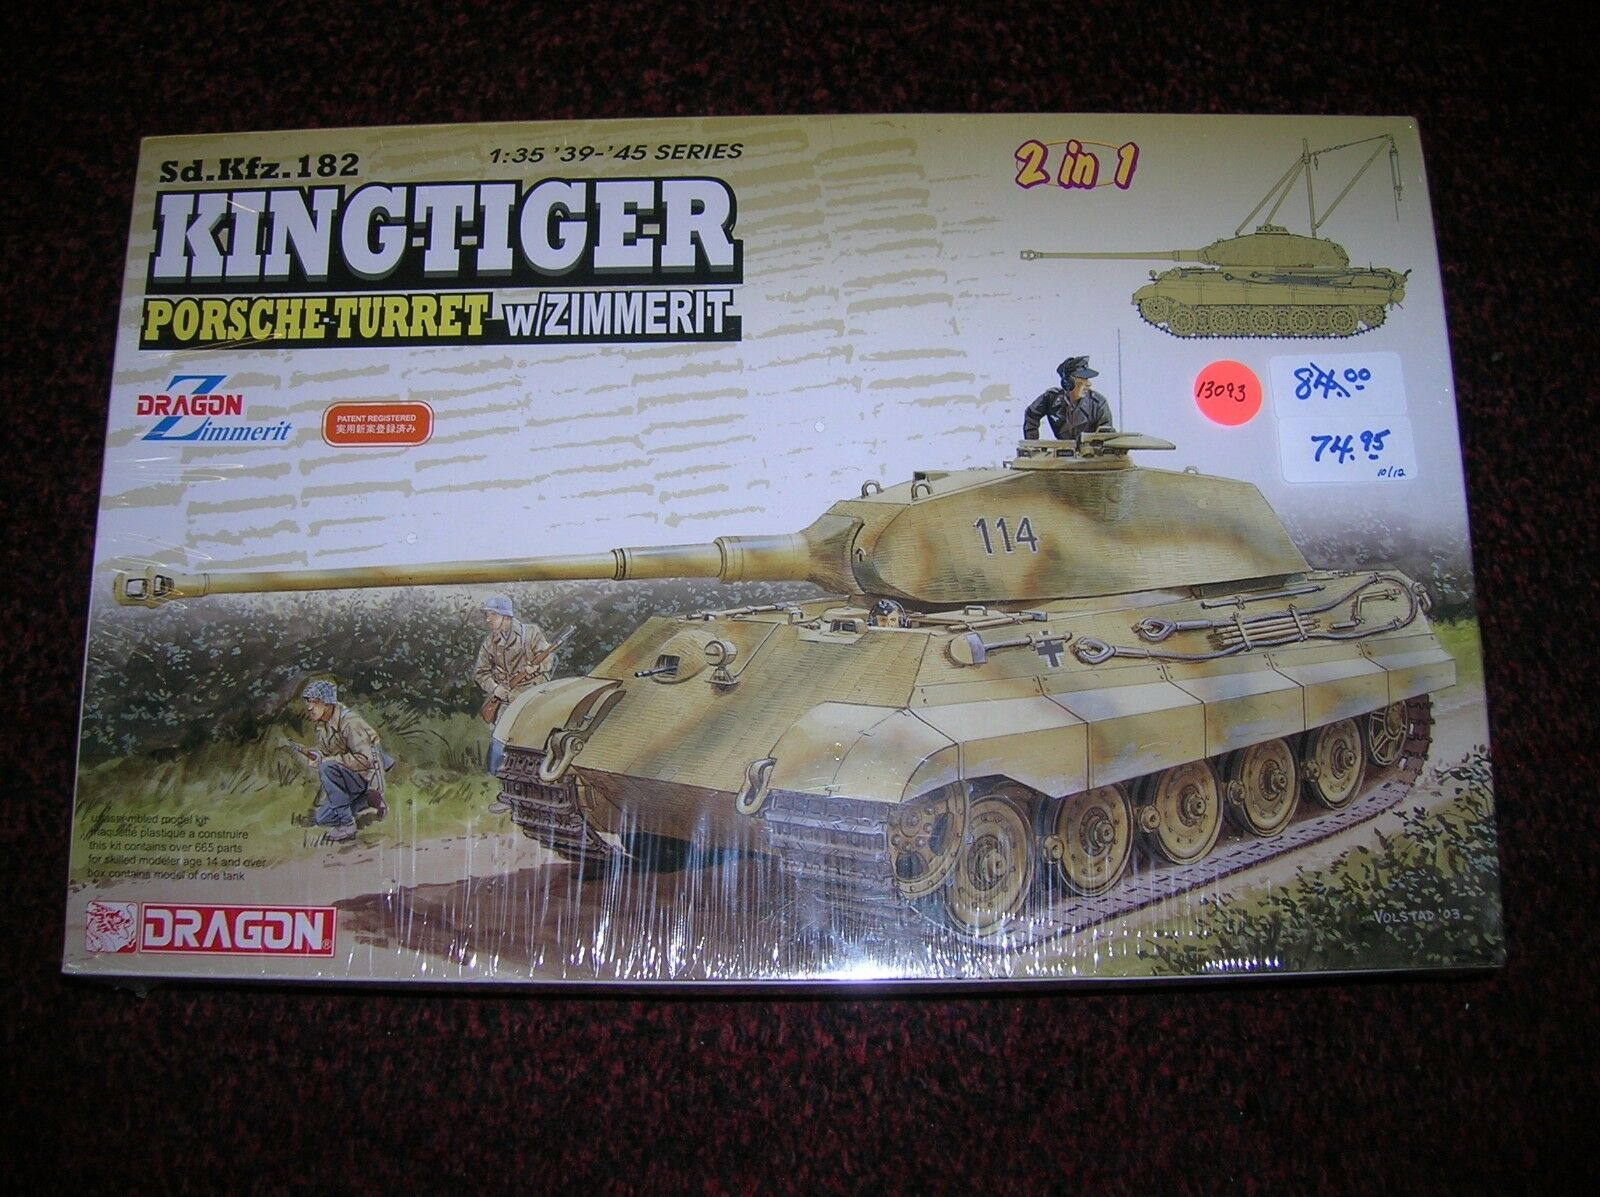 DRAGON   SD.KFZ.182 KING TIGER TANK    1 35  list   84.00  lot